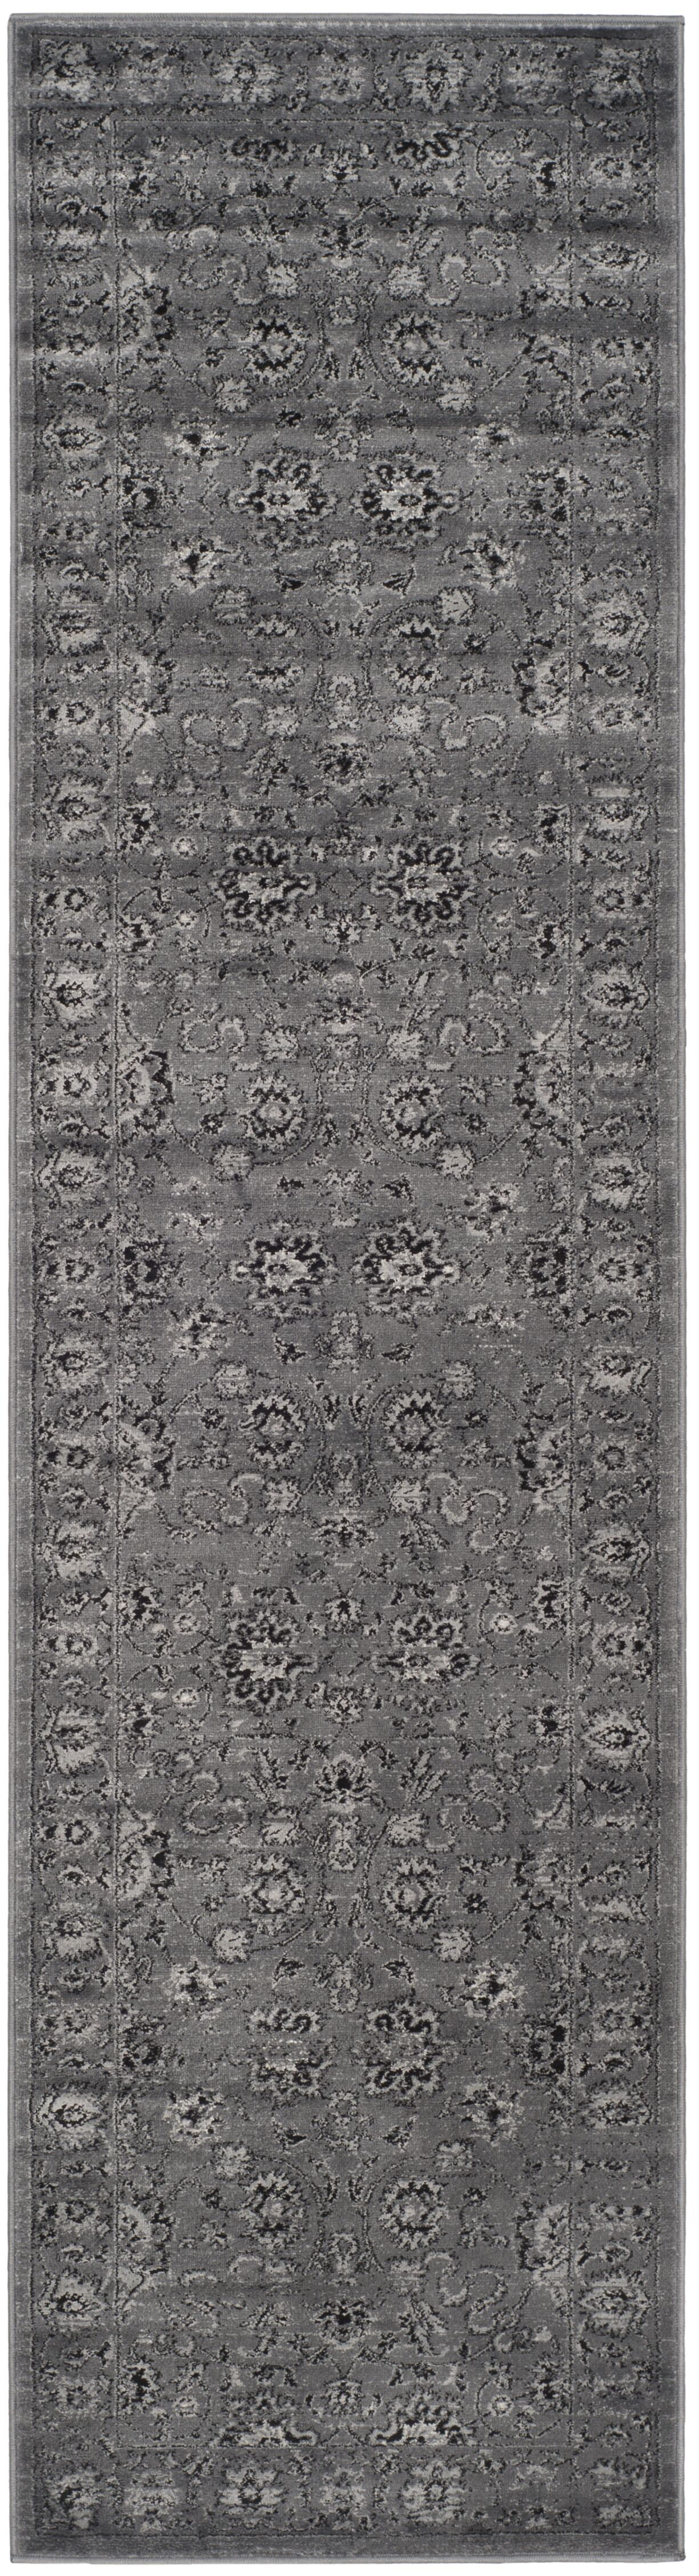 Bainsby Dark Gray / Light Gray Area Rug Rug Size: Rectangle 8' x 10'